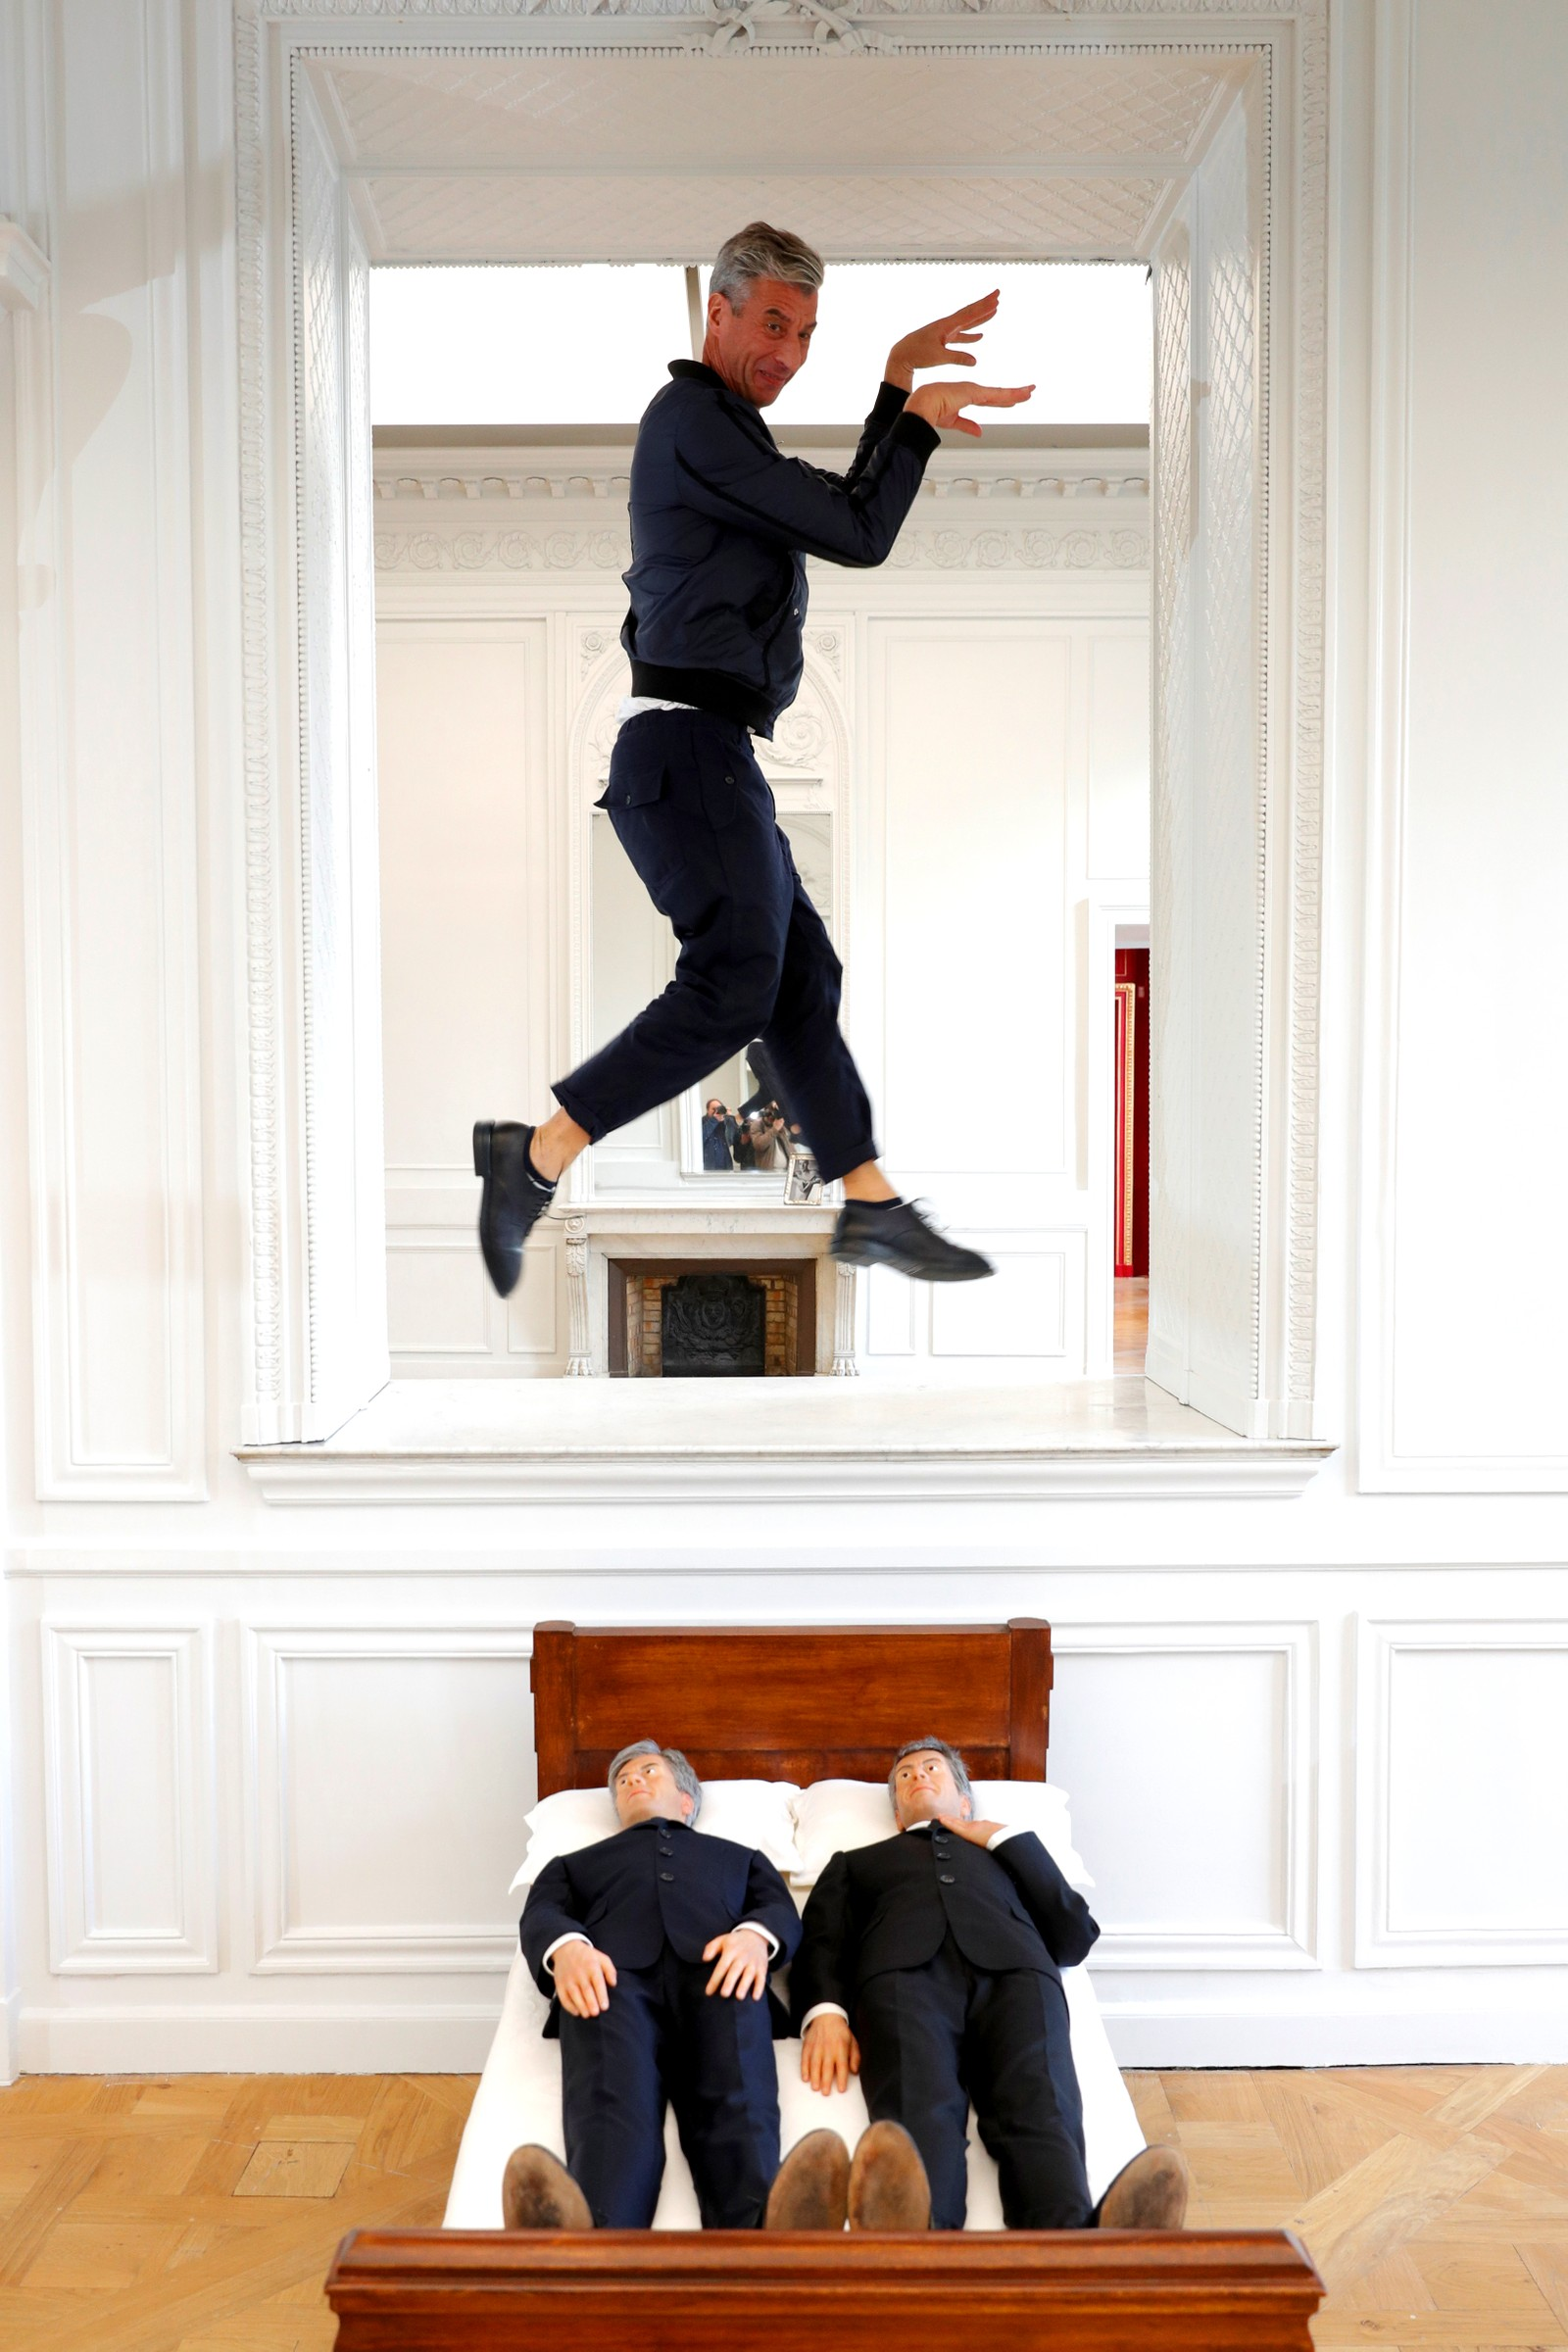 "Den italienske kunstneren Maurizio Cattelan og verket hans ""Is There Life Before Death"", som er en del av utstillingen ""Not Afraid of Love"" som foregår i Paris i Frankrike."